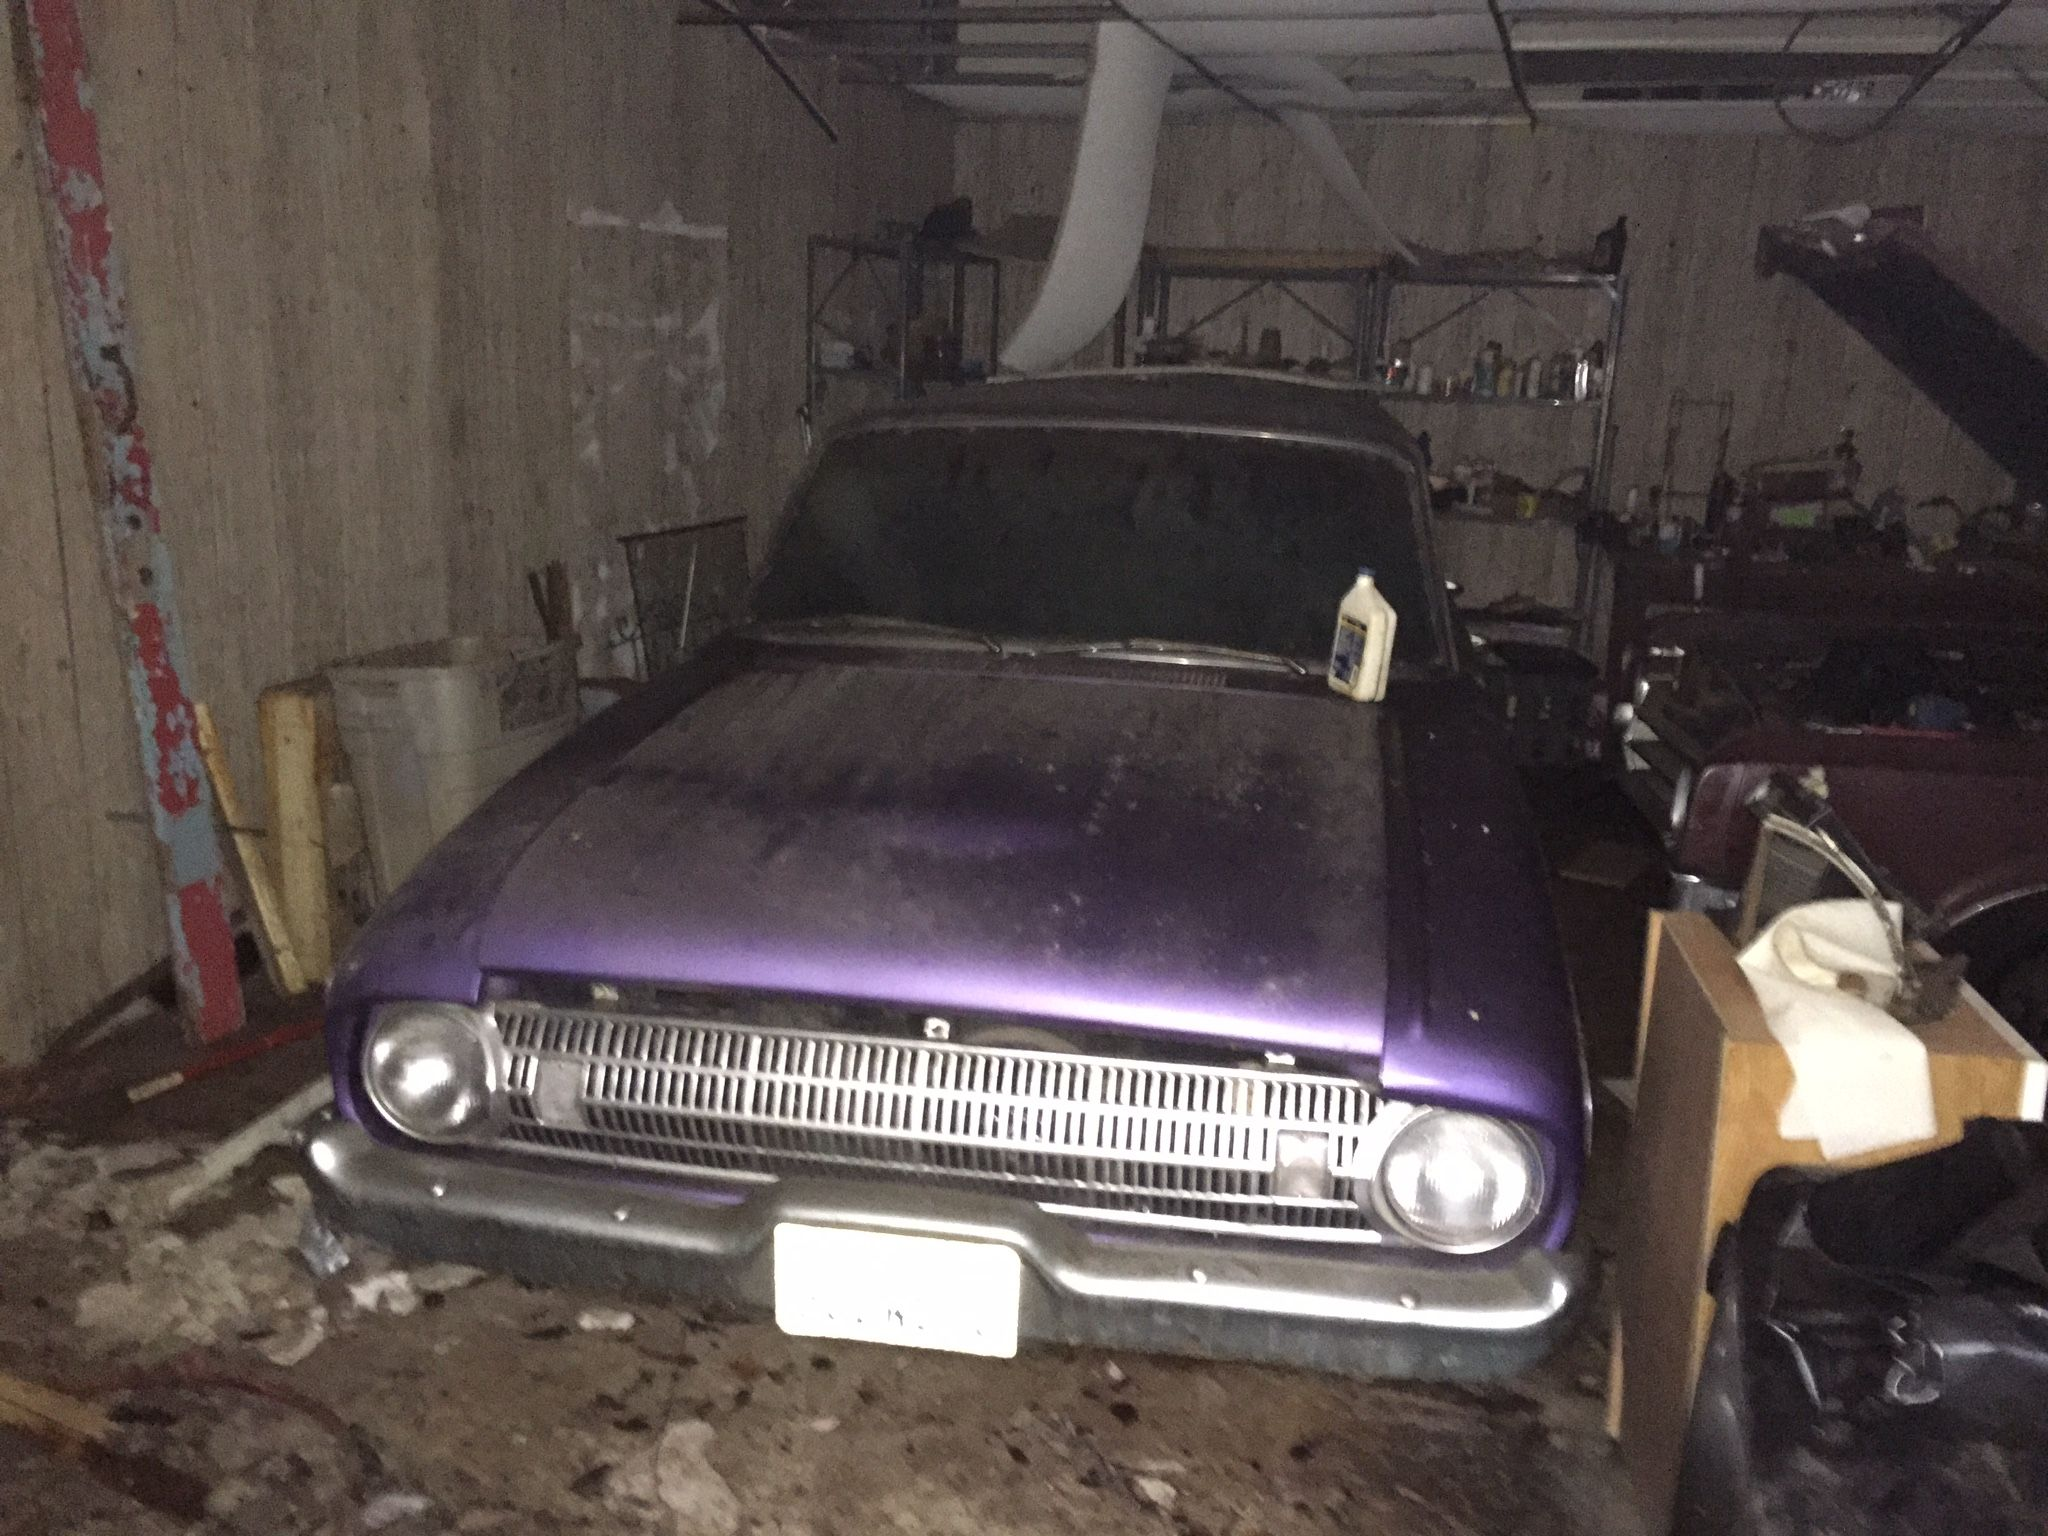 My Barn Find A 1961 Ford Falcon Station Wagon In Plumb Crazy Purple With